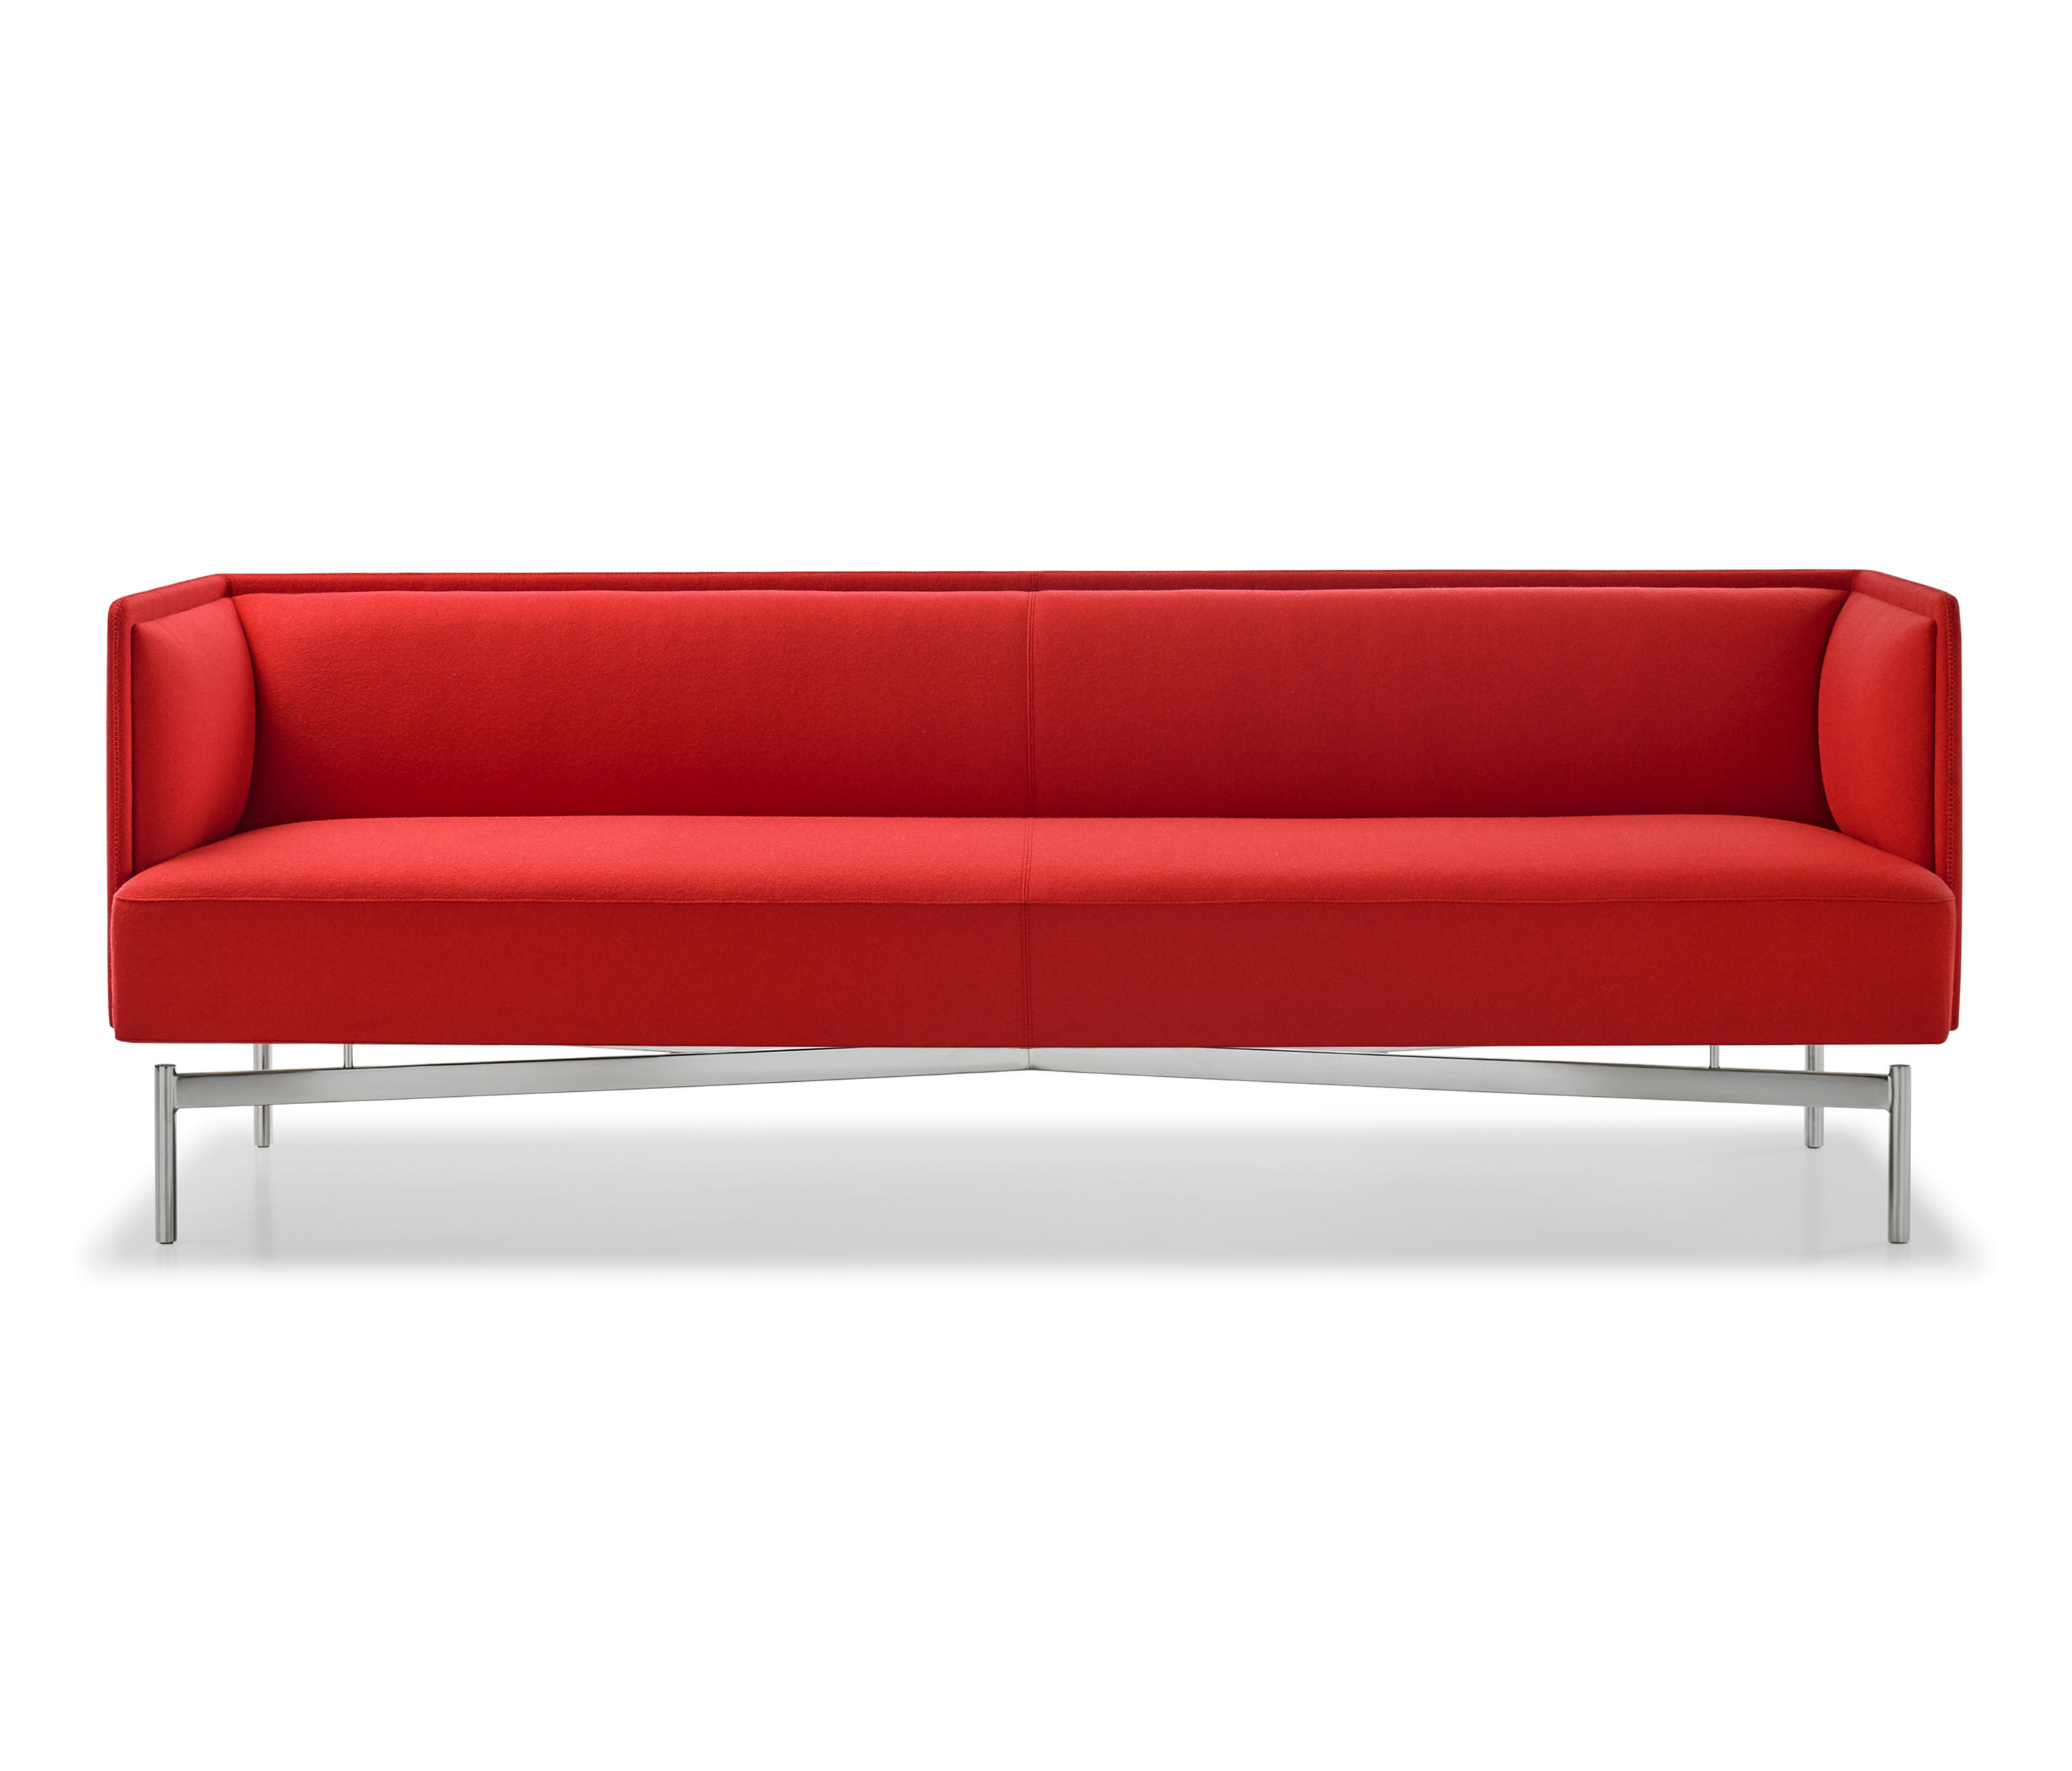 Finale Sofa By Bernhardt Design | Lounge Sofas